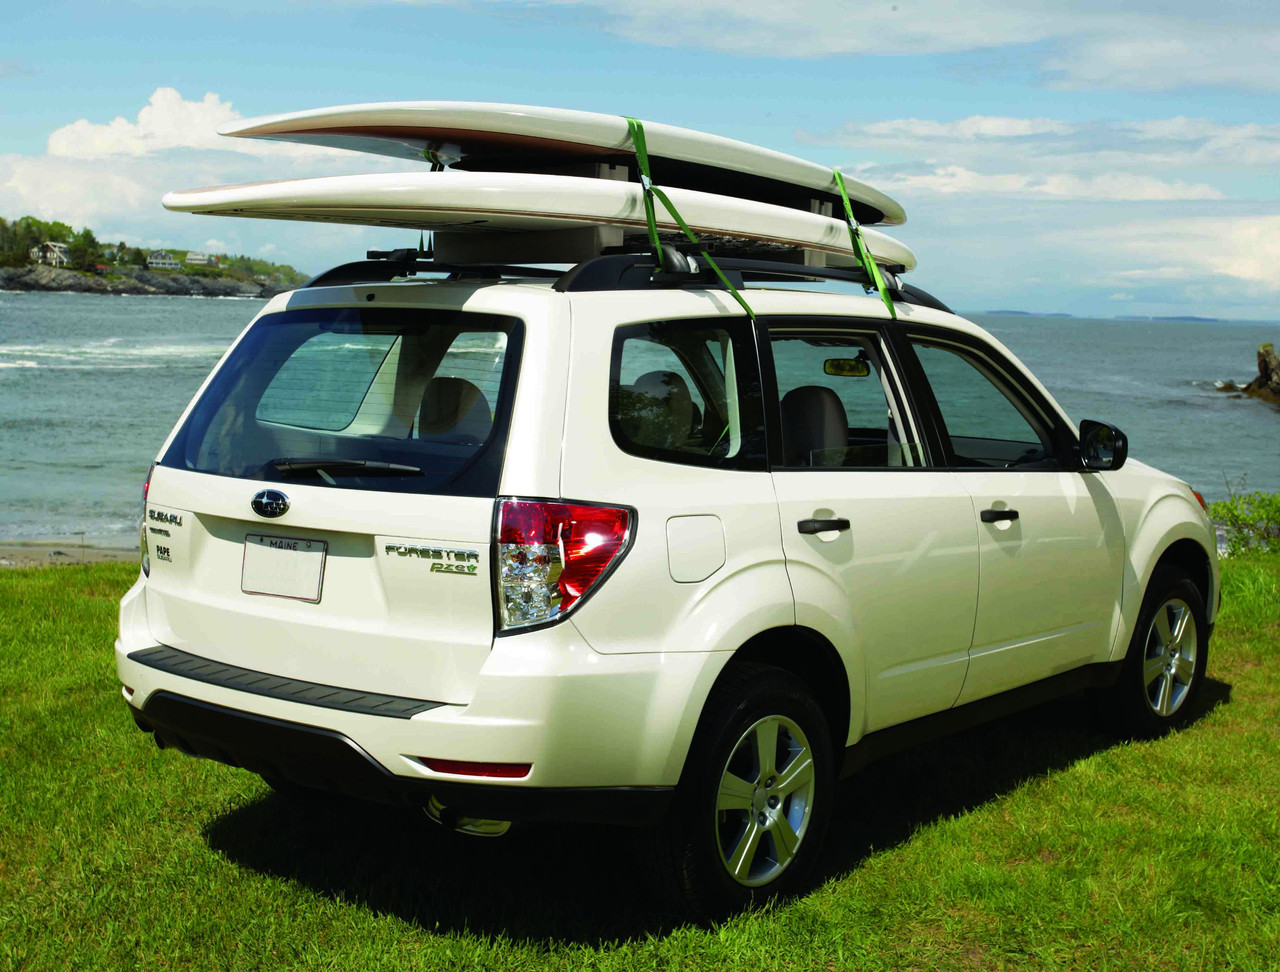 Auto Dakdragers Sup Roof Rack 2 Sup Car Rack Removable